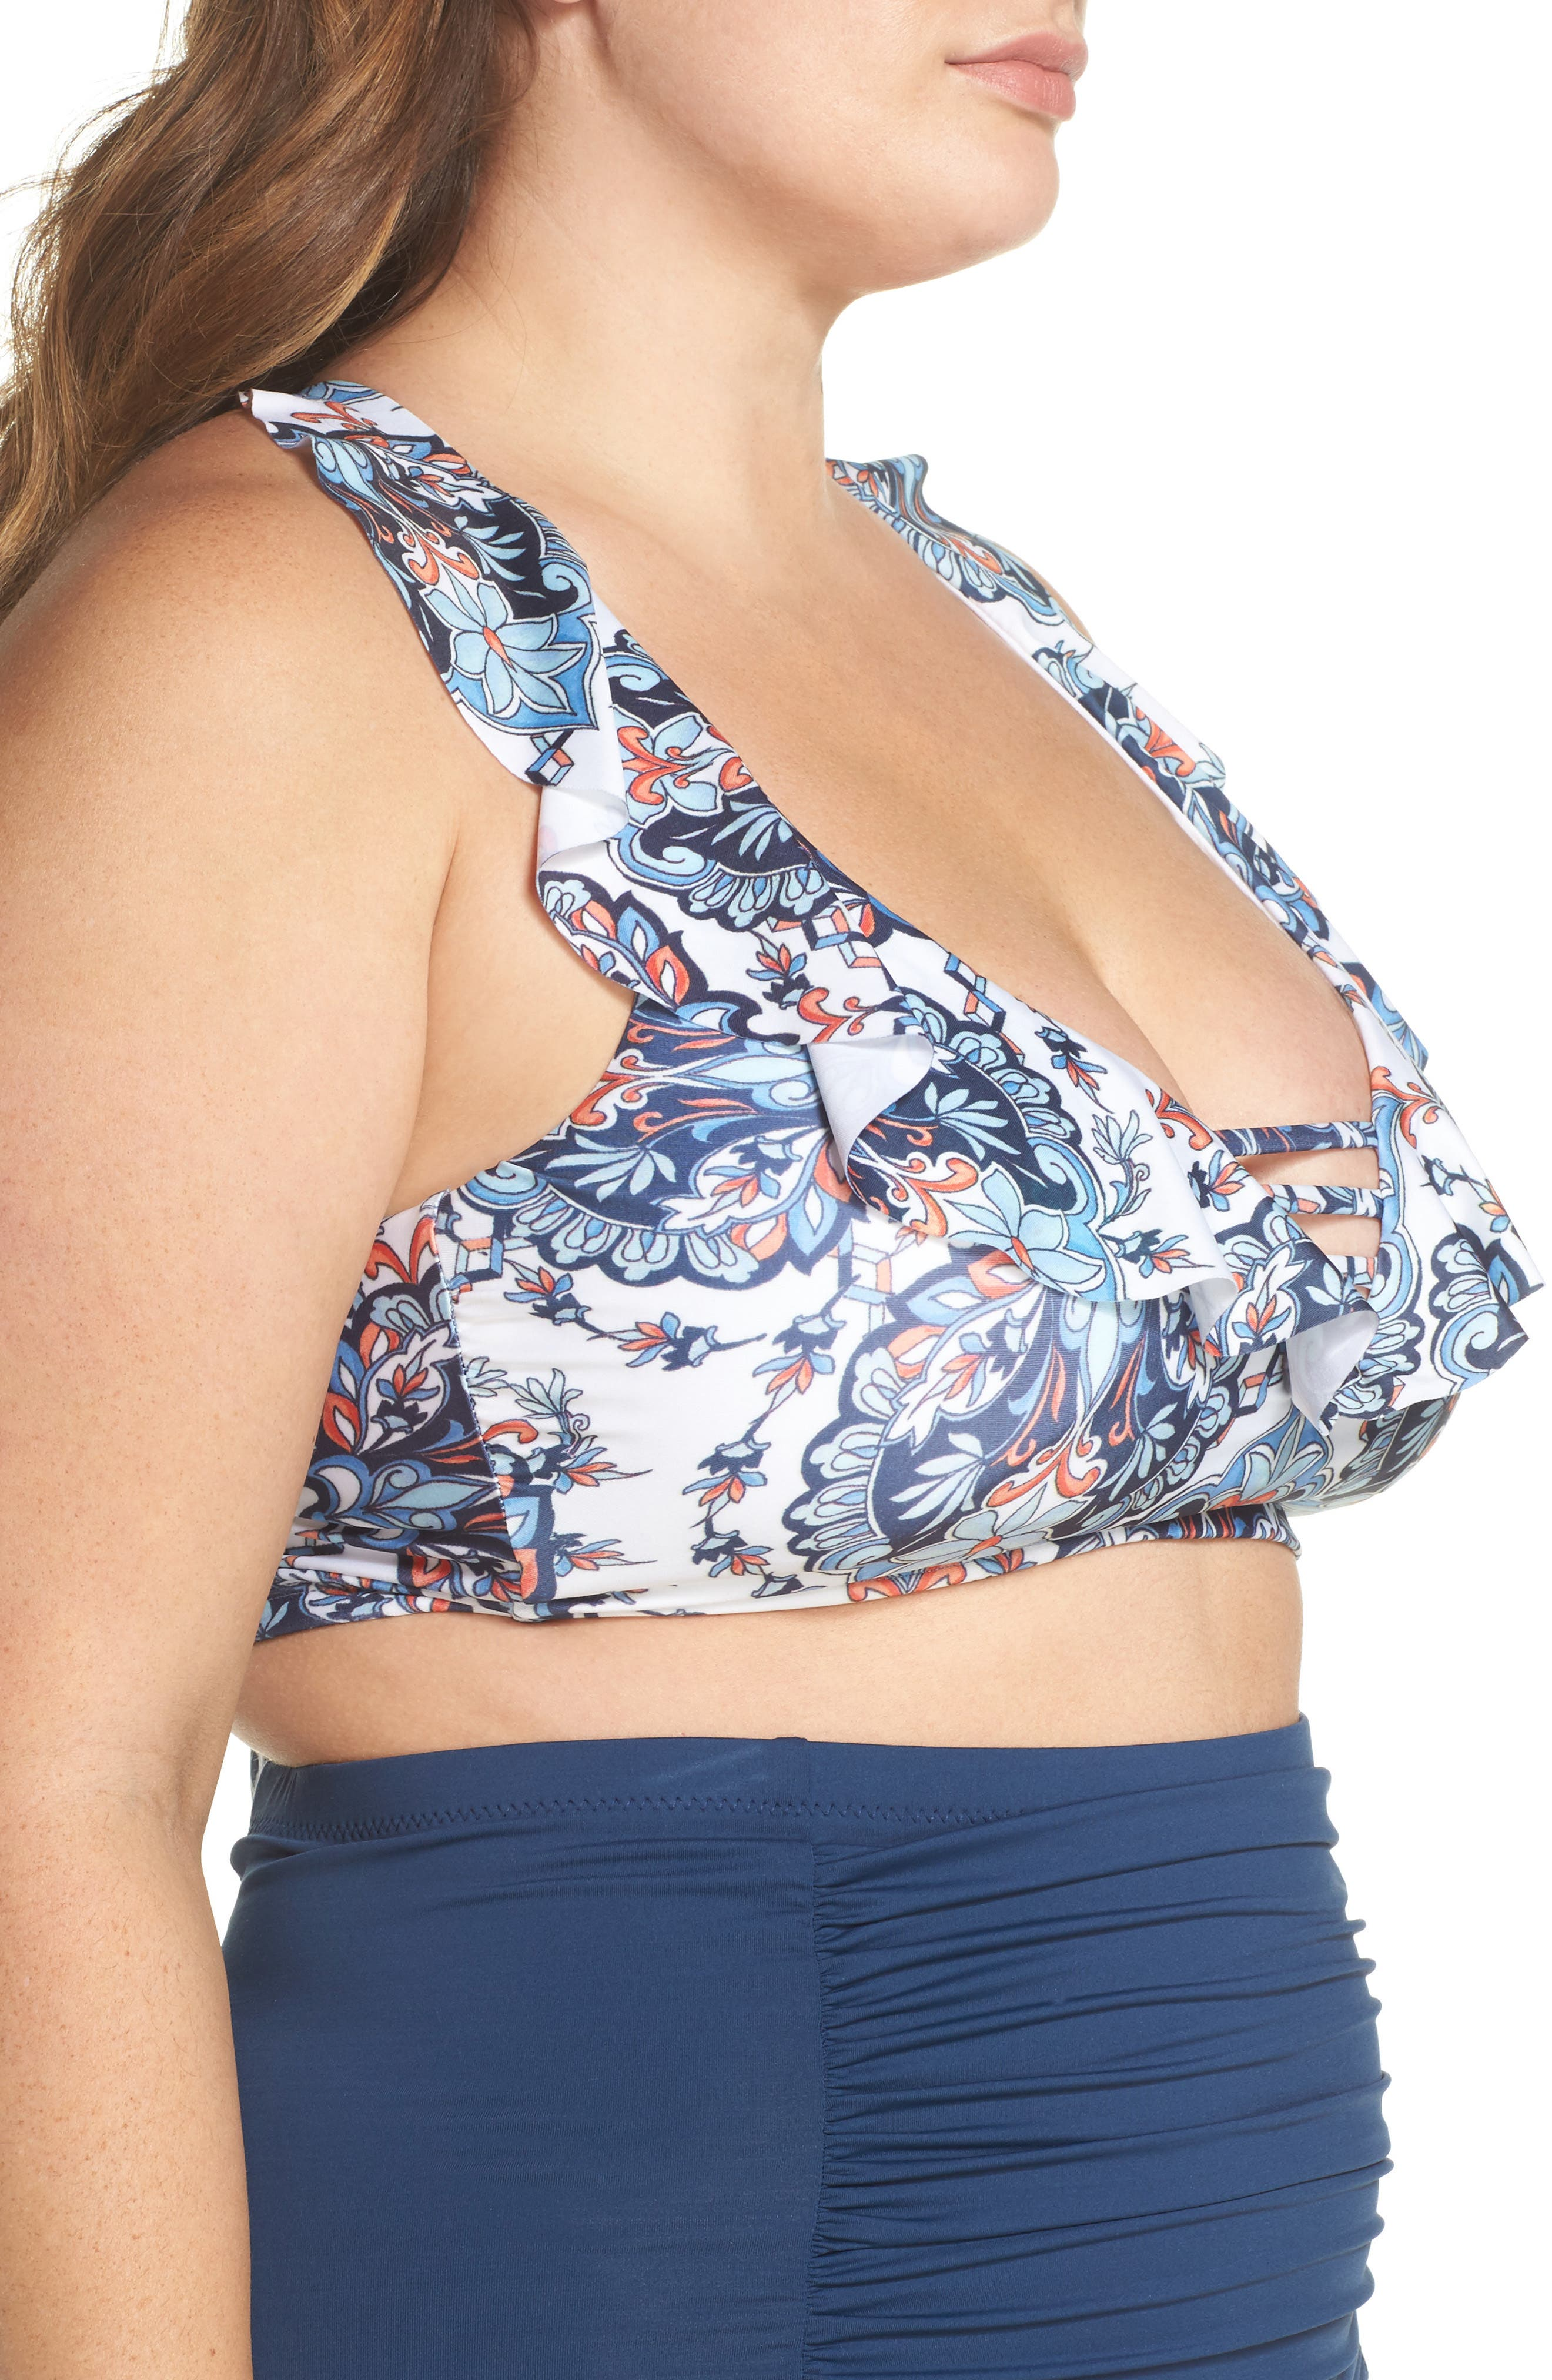 Naples Ruffle Bikini Top,                             Alternate thumbnail 3, color,                             400